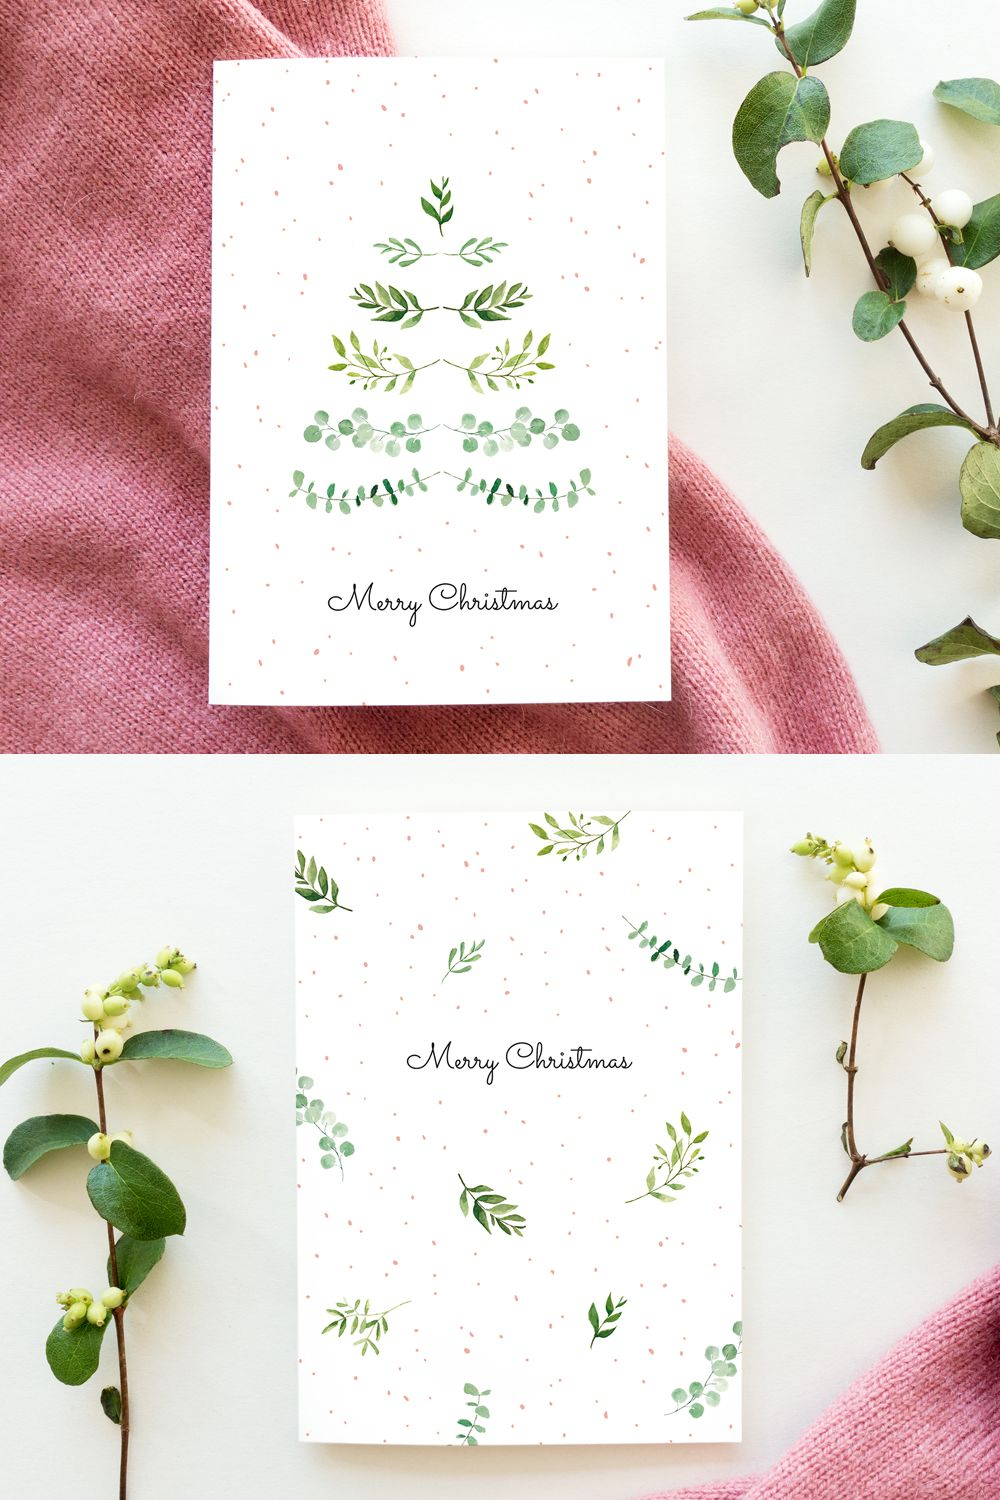 Christmas cards watercolor leaves